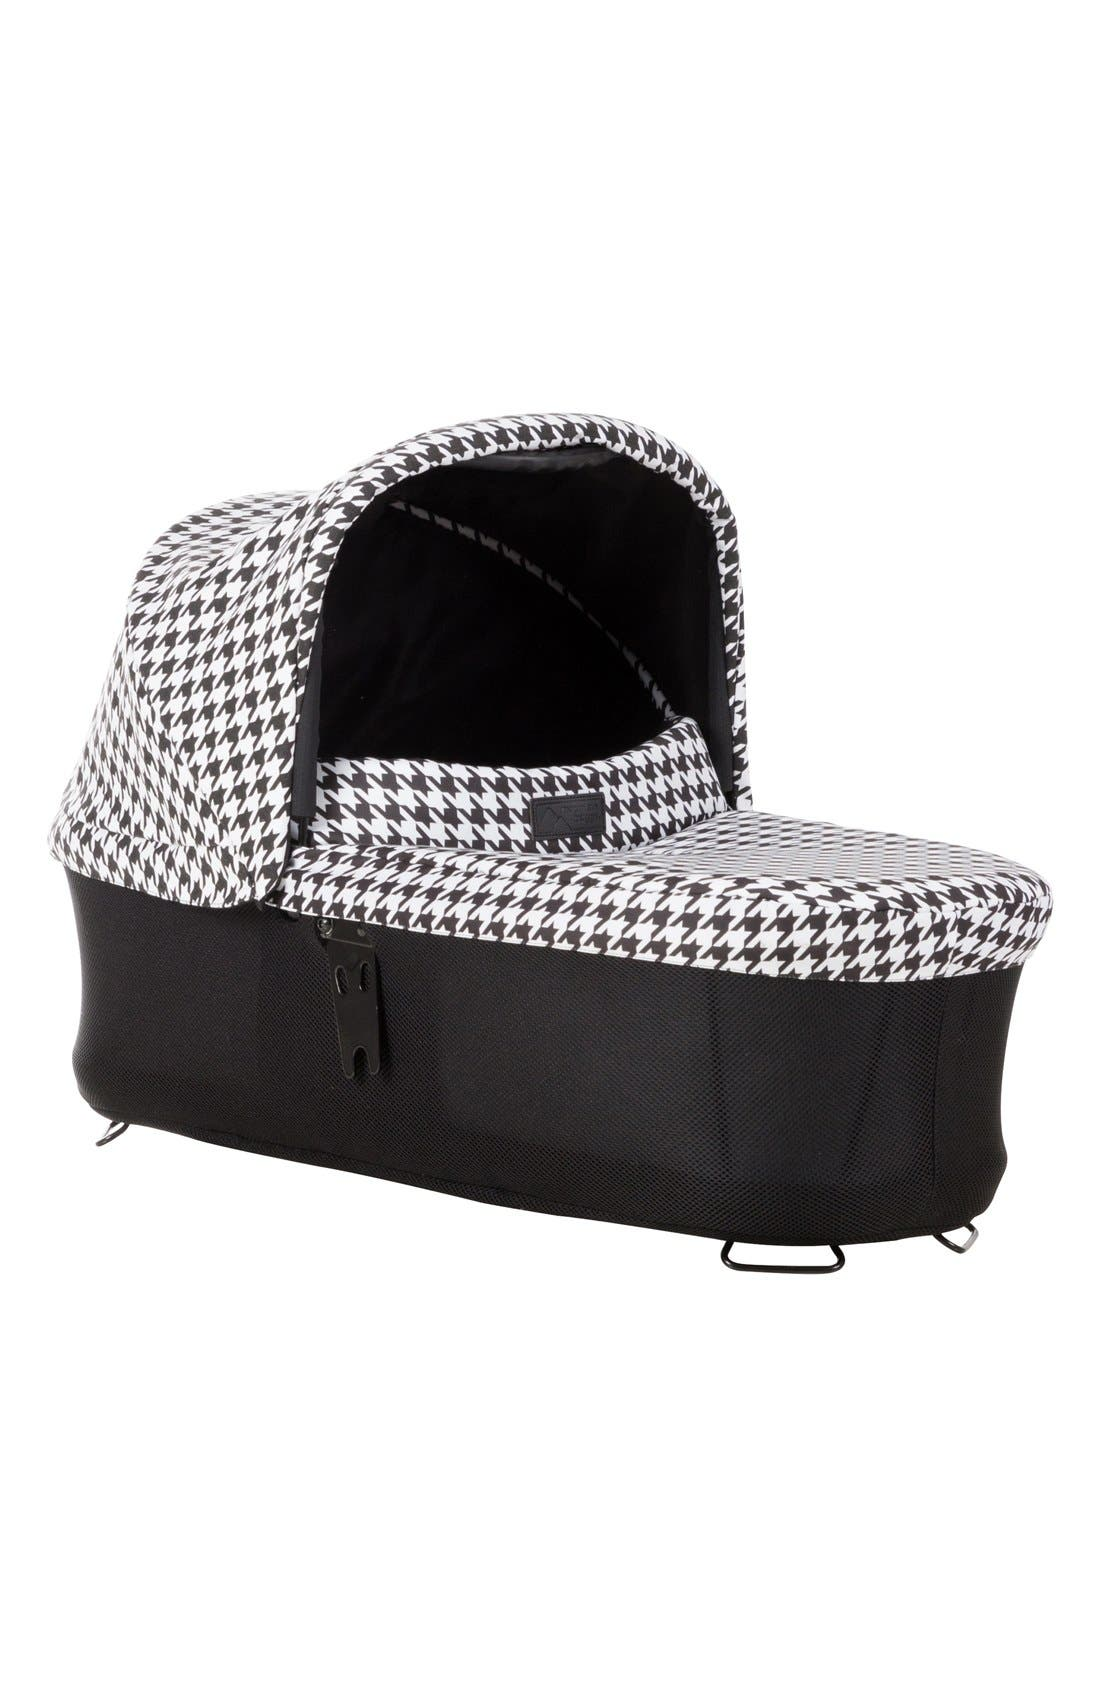 Urban Jungle - The Luxury Collection Carrycot Plus,                             Main thumbnail 1, color,                             PEPITA